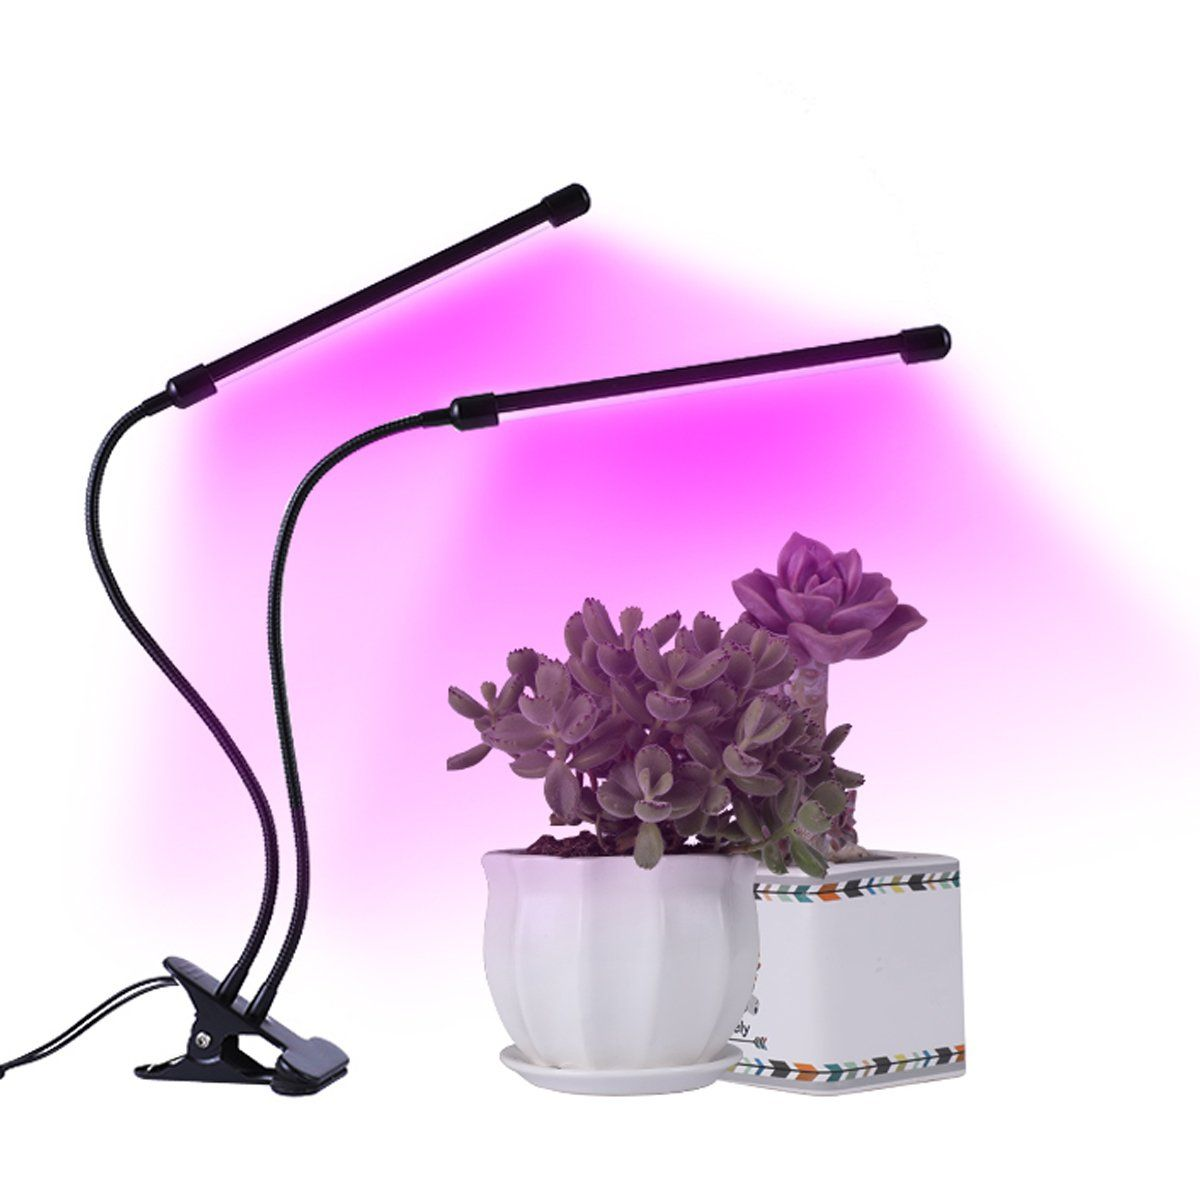 Clovertale Timing Function Dual Head Grow Light 18w Dual Head 360a Flexible Indoor Led Plant Grow Lamp With Adjust Hydroponic Gardening Grow Lamps Hydroponics